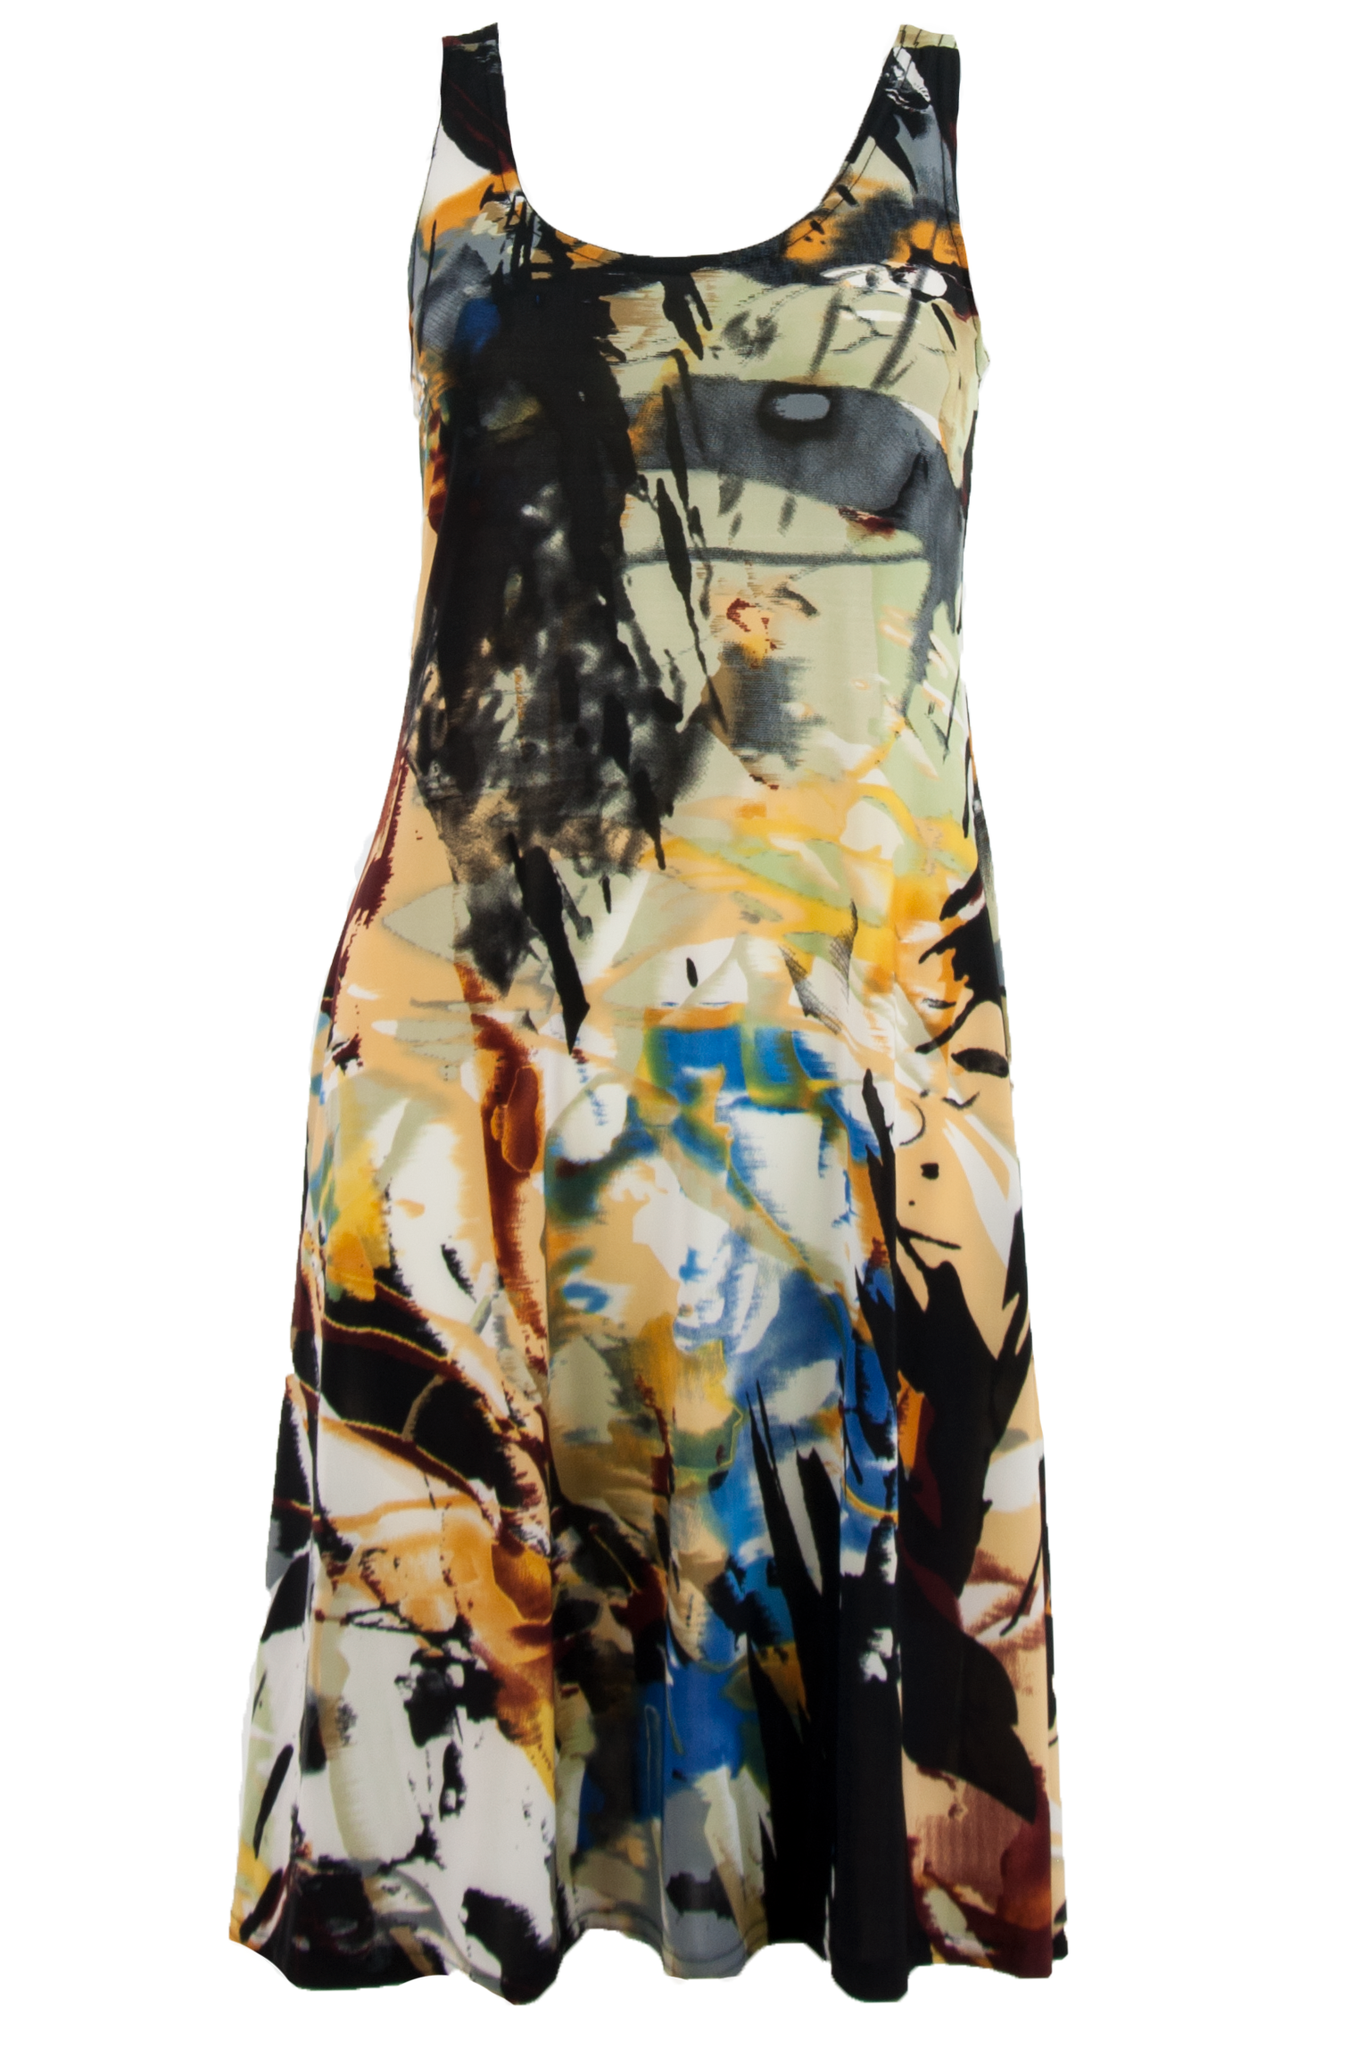 vintage dress with paint splatter print